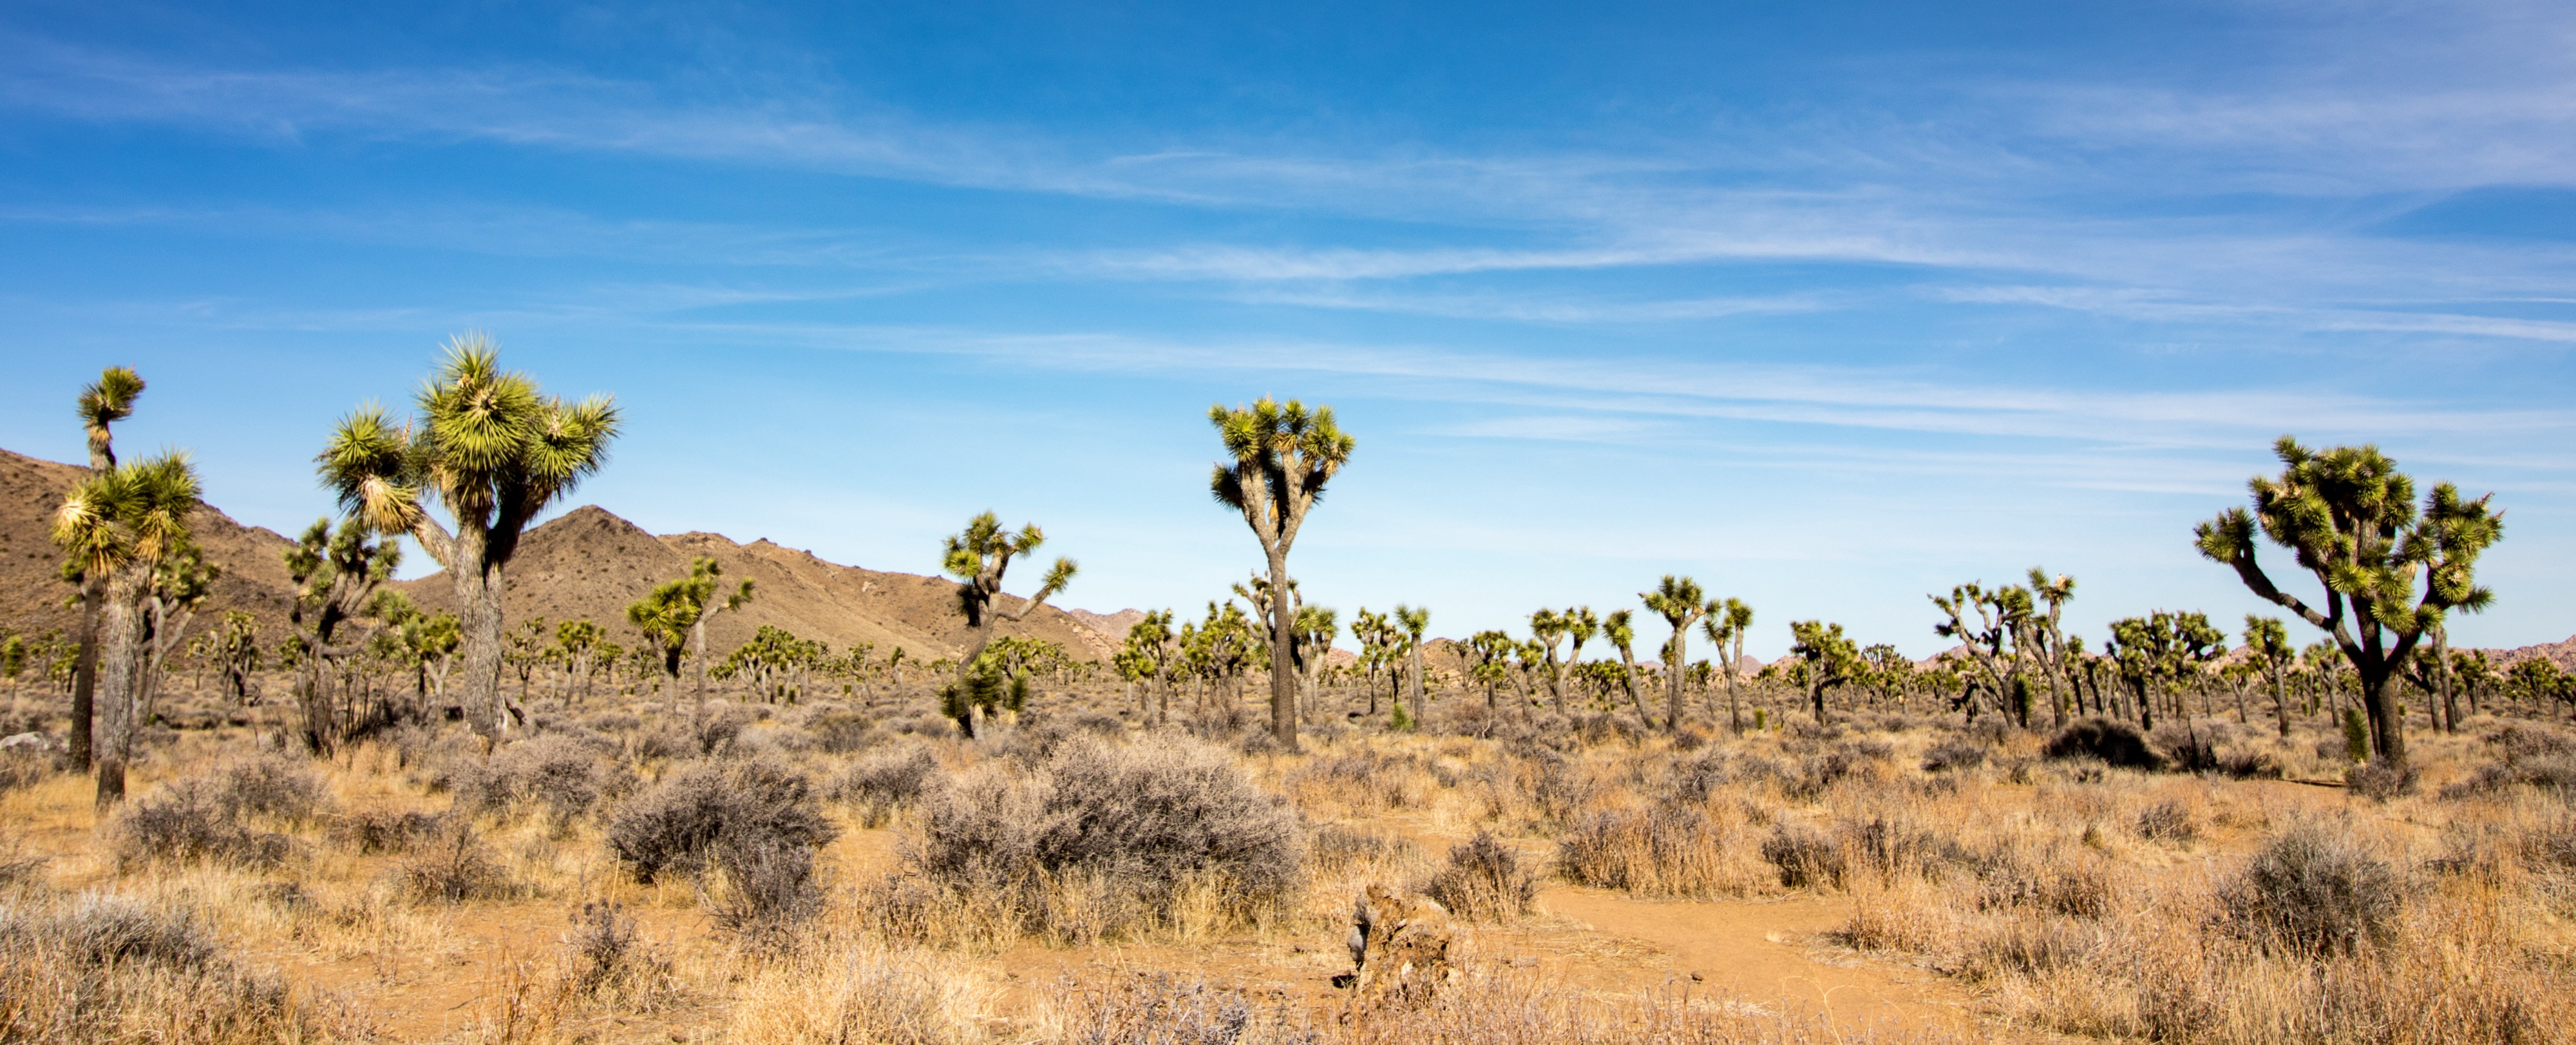 Joshua Tree National Park The Value Of Good Campground Mates